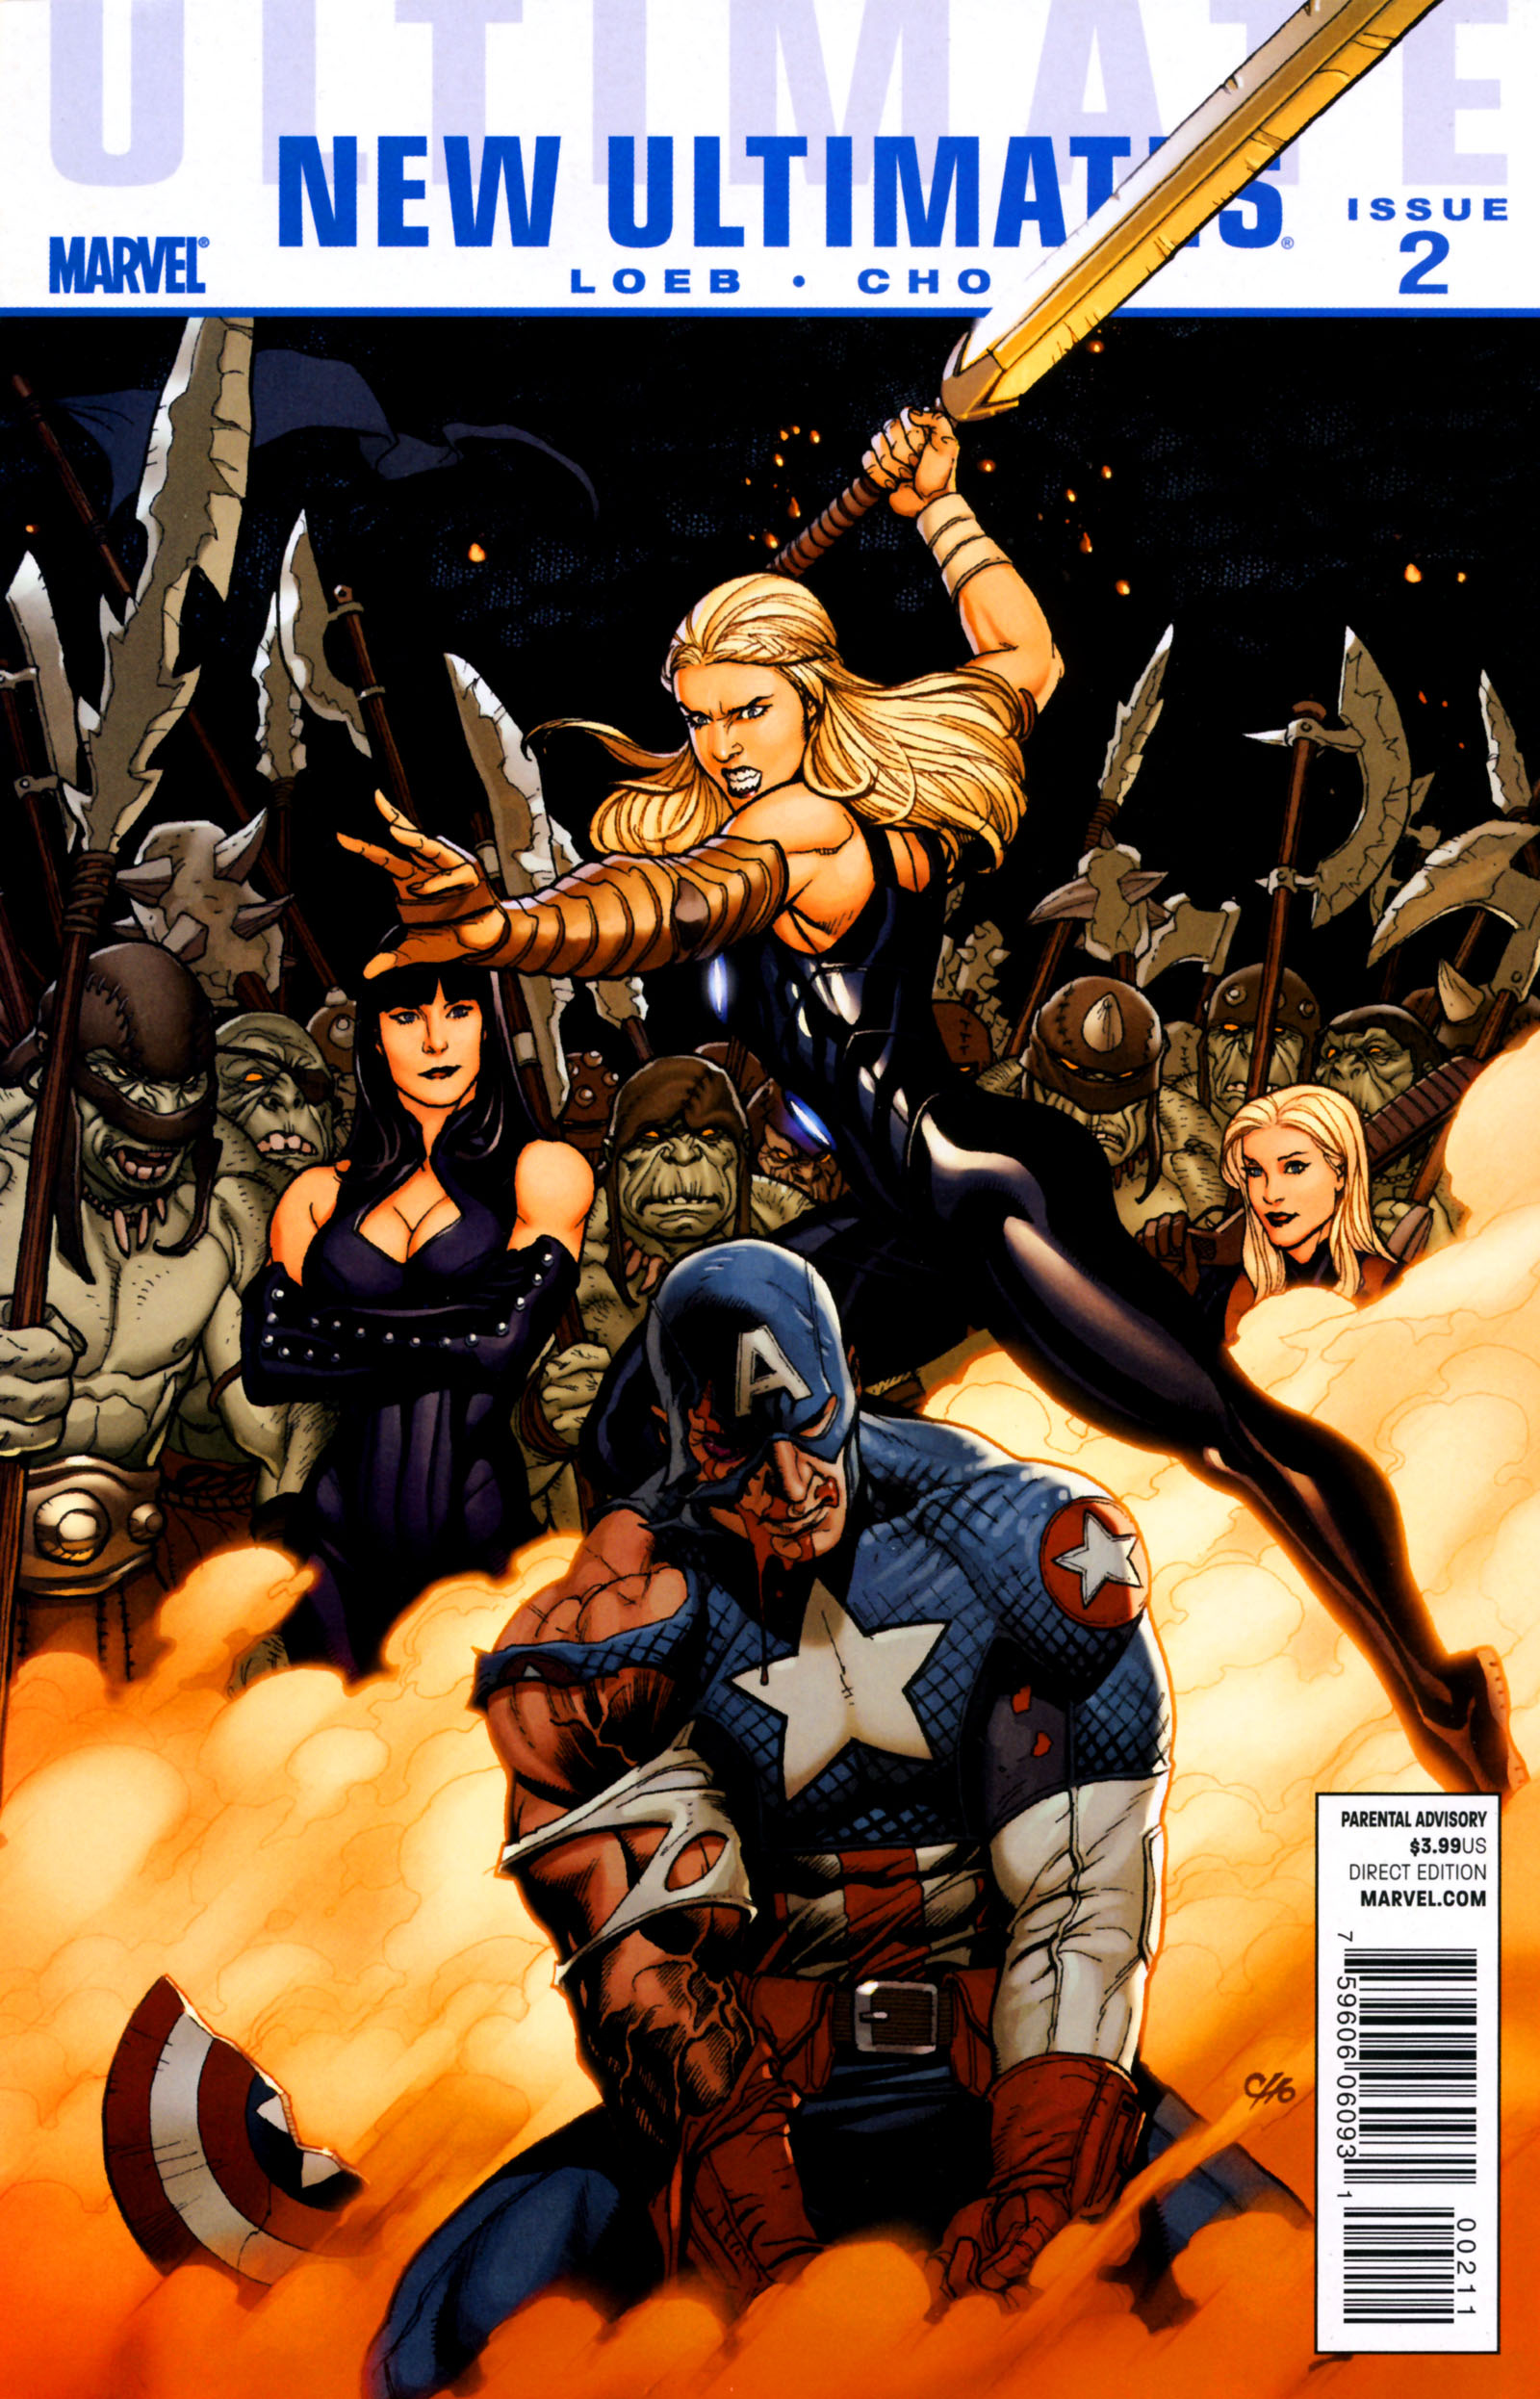 Read online Ultimate New Ultimates comic -  Issue #2 - 1